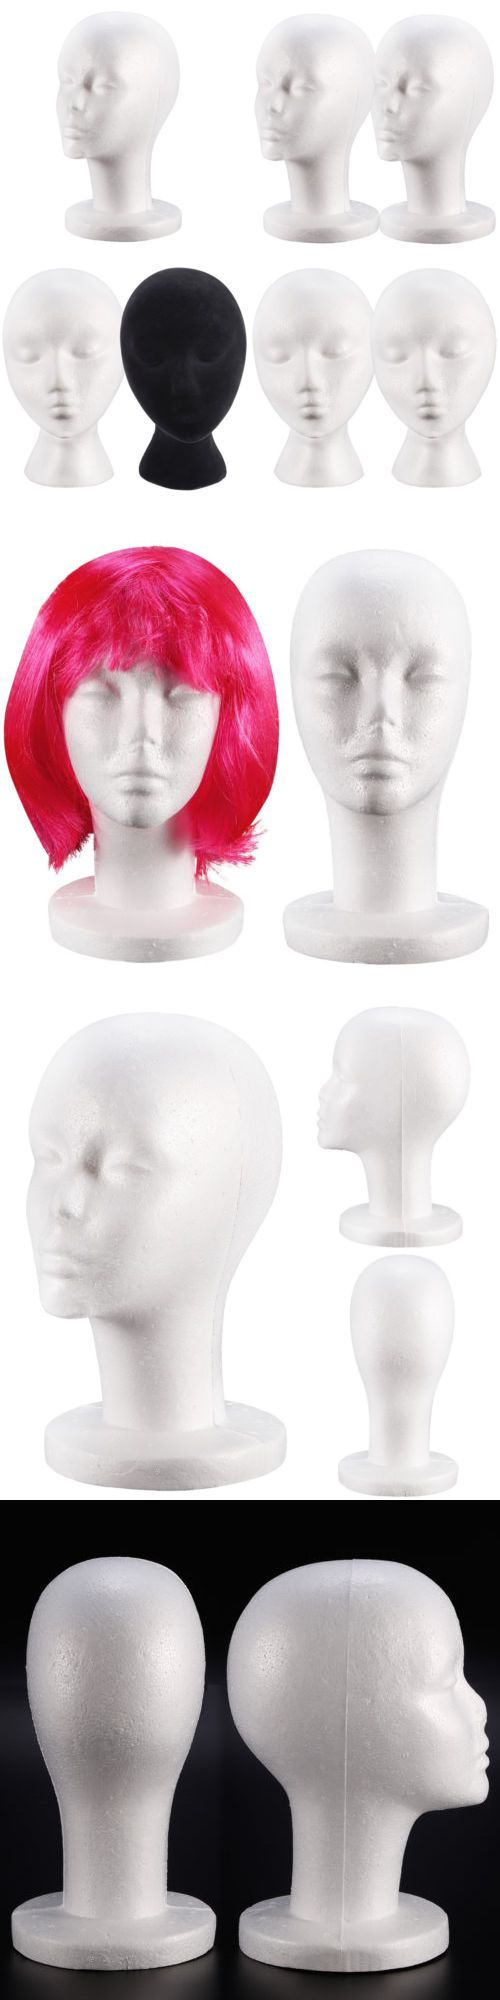 Wig and Extension Supplies: Polystyrene Female Mannequin Head Dummy Wig Stand Shop Display Hat Cap Patterns -> BUY IT NOW ONLY: $56.99 on eBay!